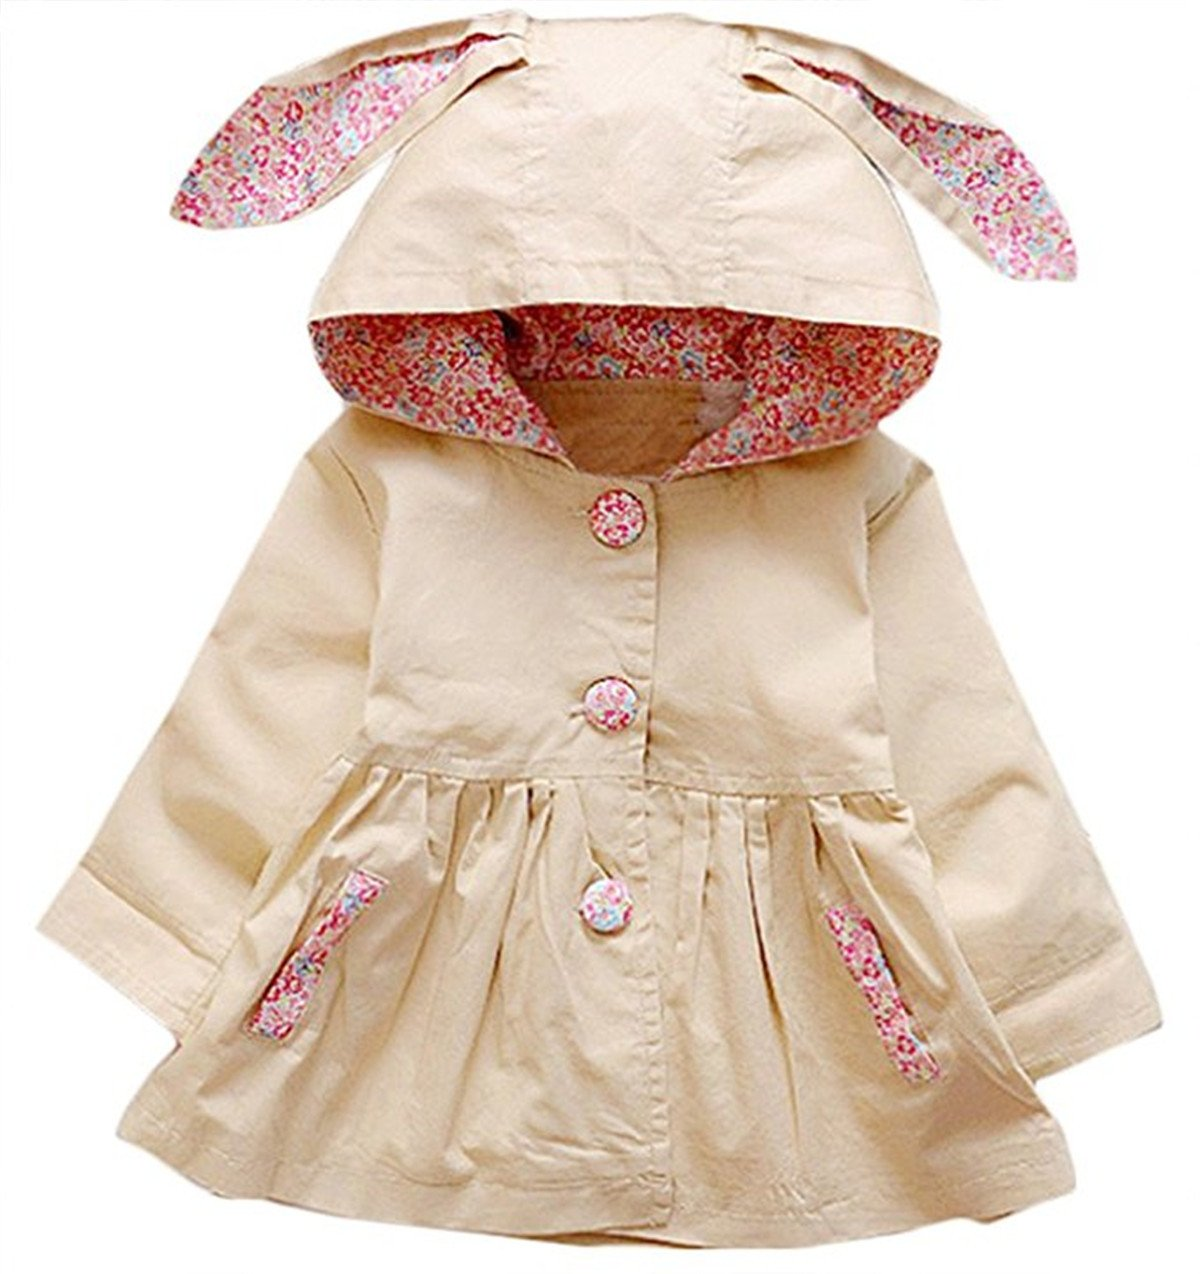 FAIRYRAIN Baby Kid Little Girls Wind Proof Spring Autumn Cute Rabbit Hoodie Jacket Coat Outerwear